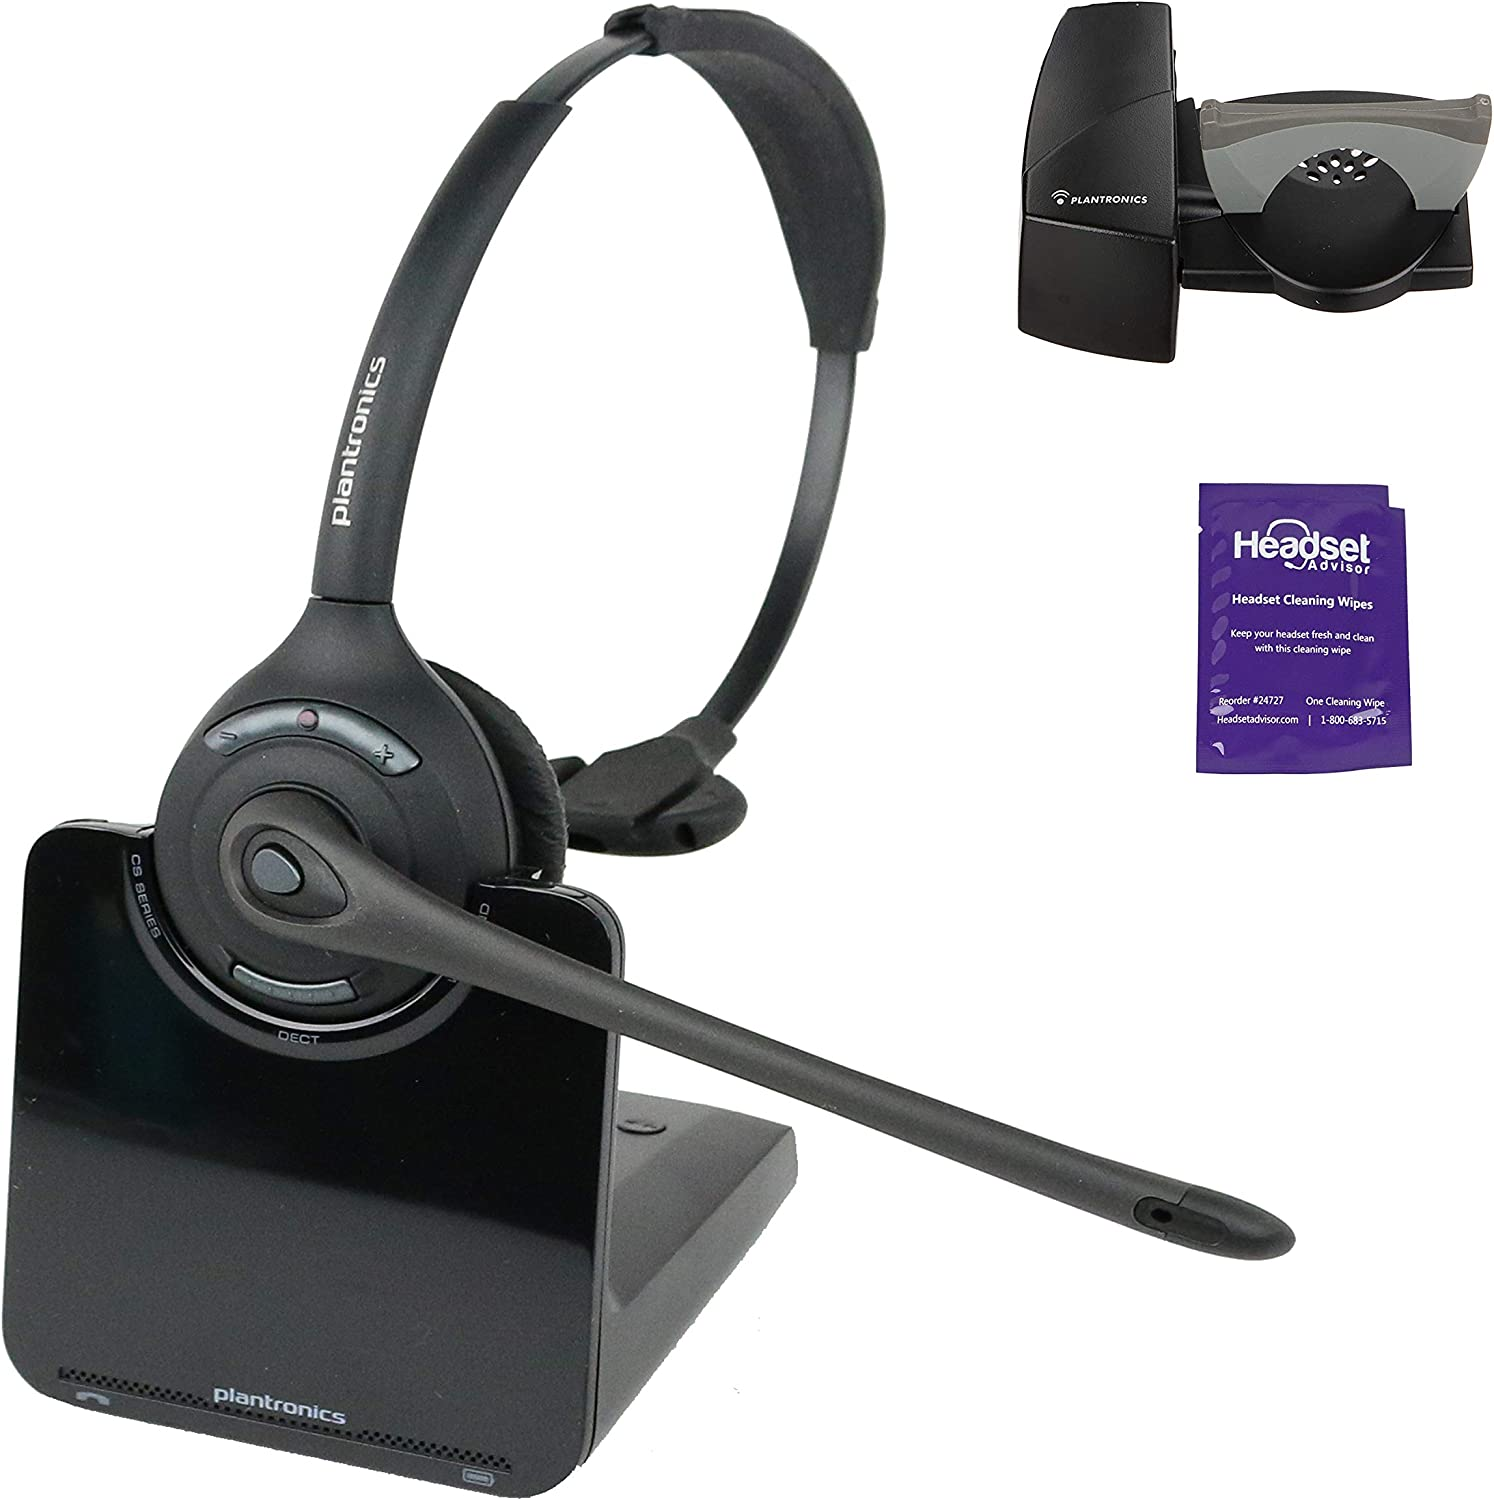 Amazon Com Plantronics Cs510 Wireless Headset System Bundle With Lifter And Headset Advisor Wipe Renewed Office Products